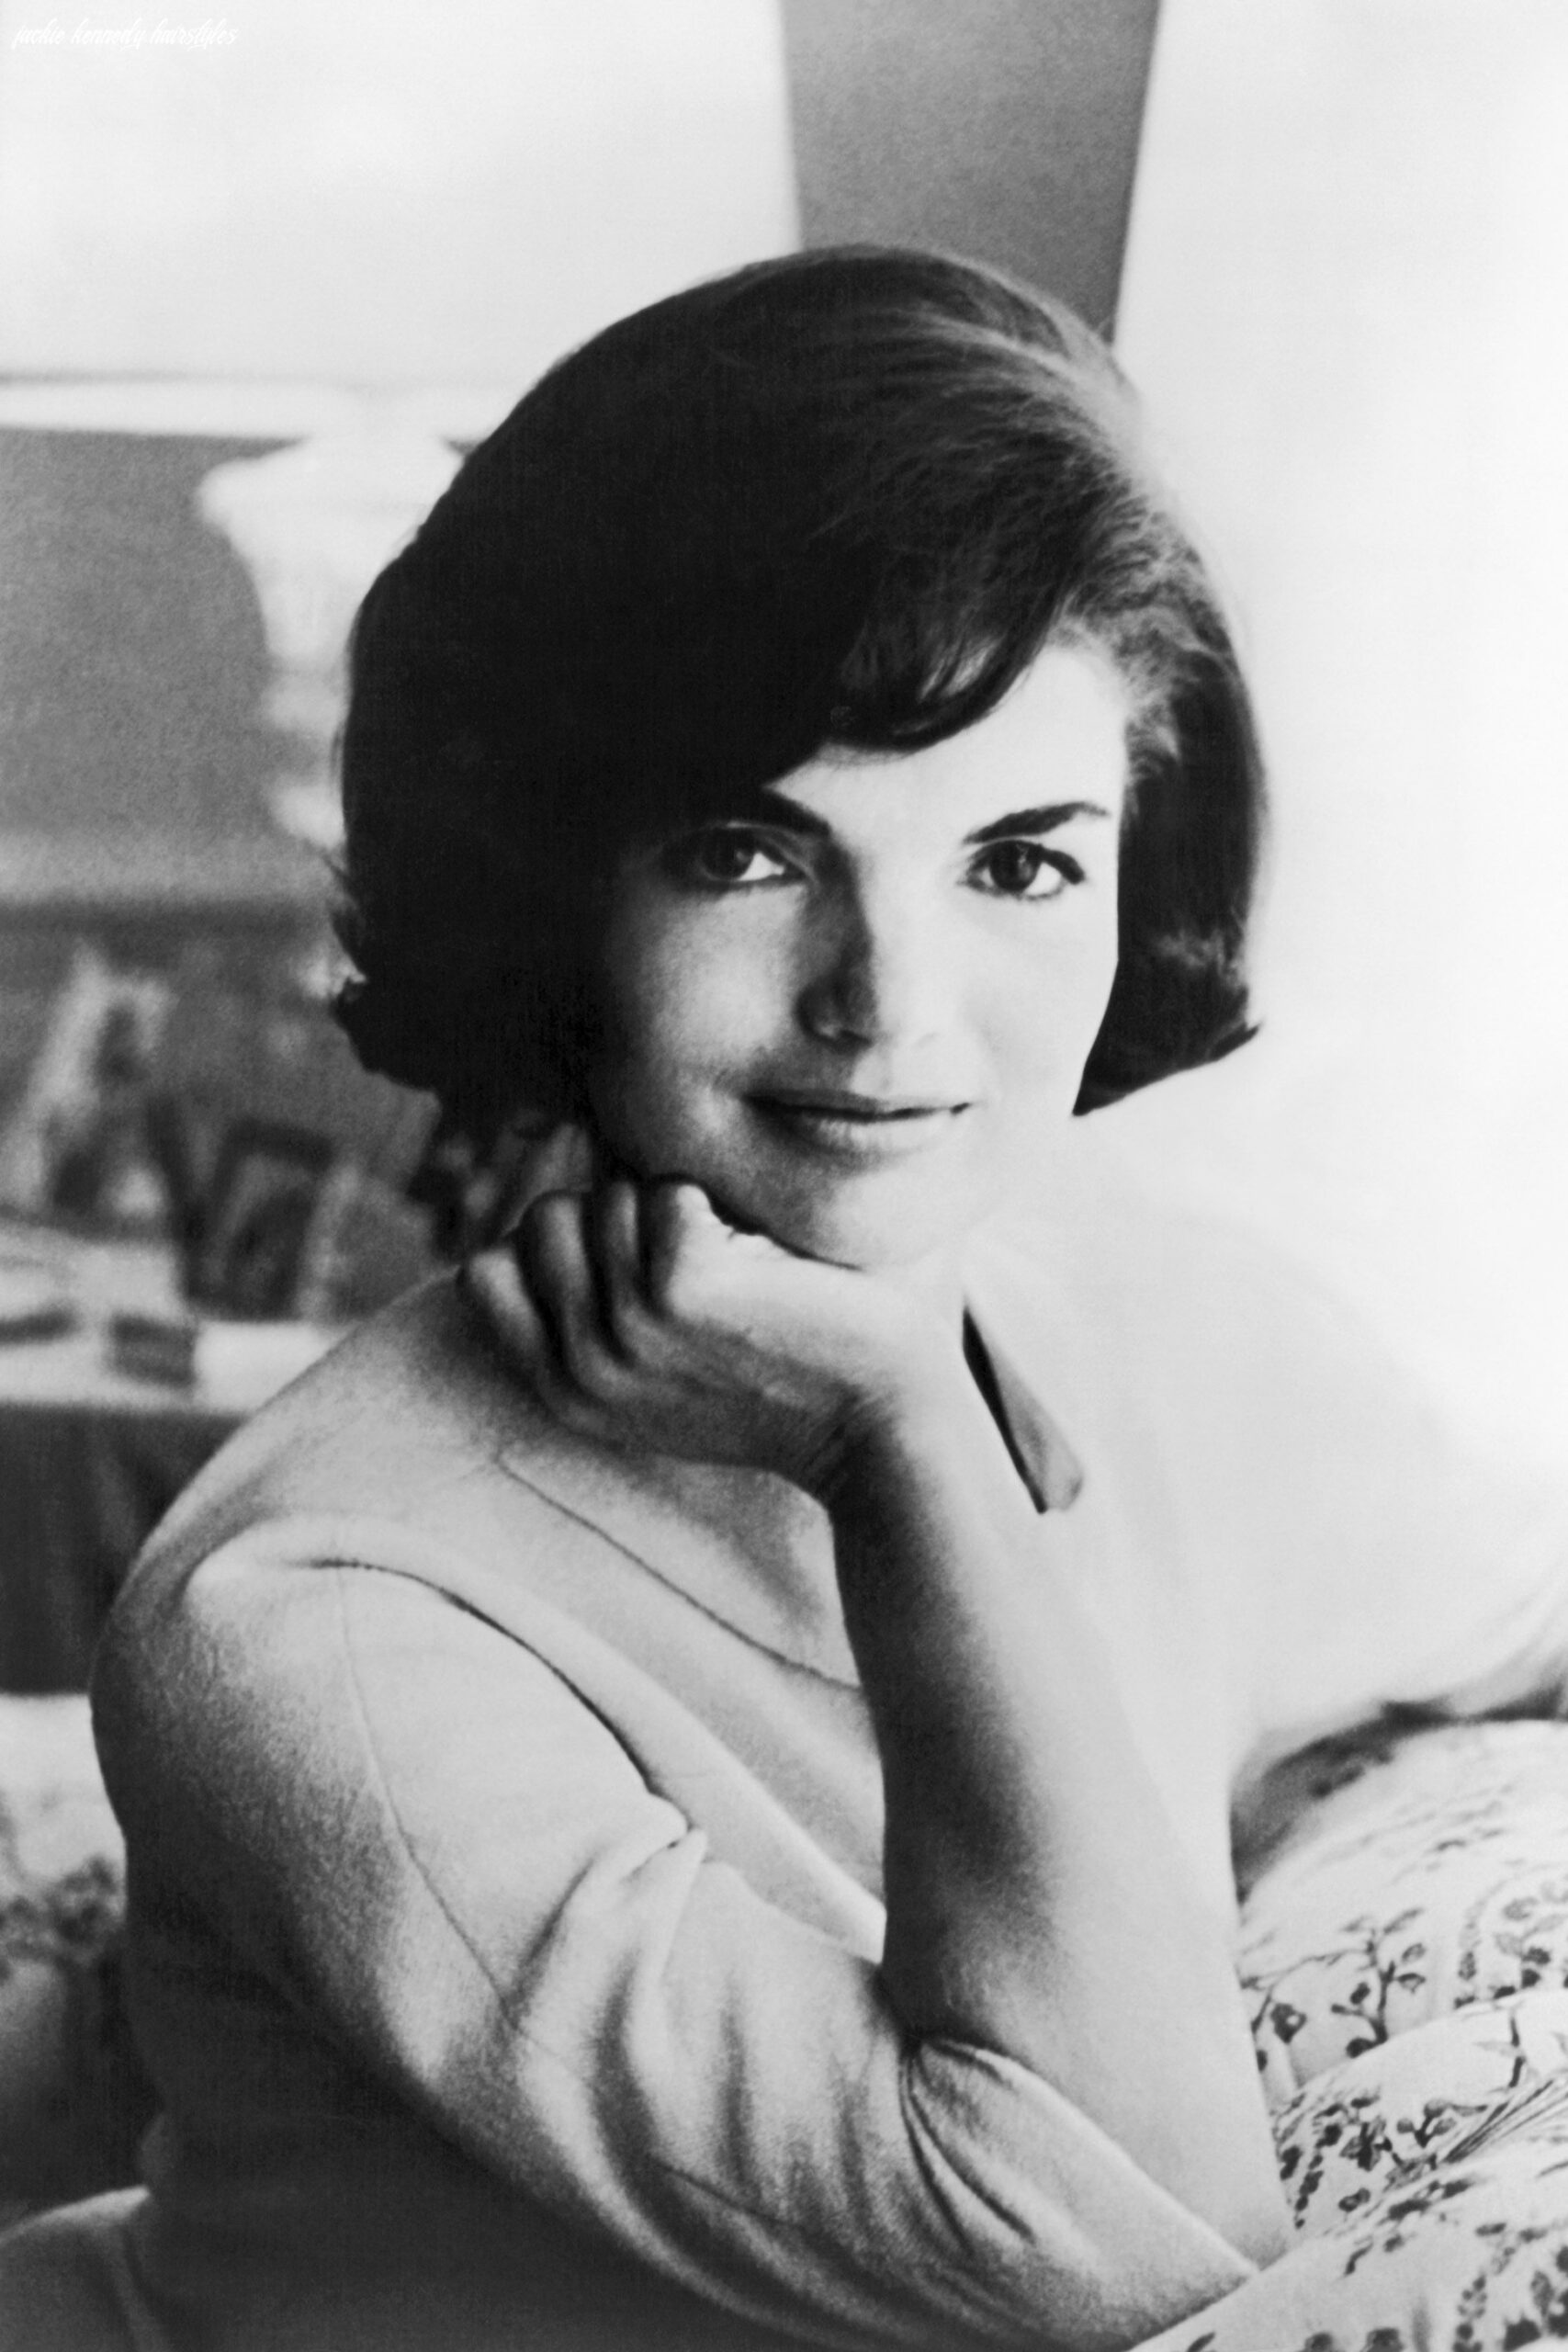 Iconic jackie kennedy fashion pictures style photos of jackie o jackie kennedy hairstyles